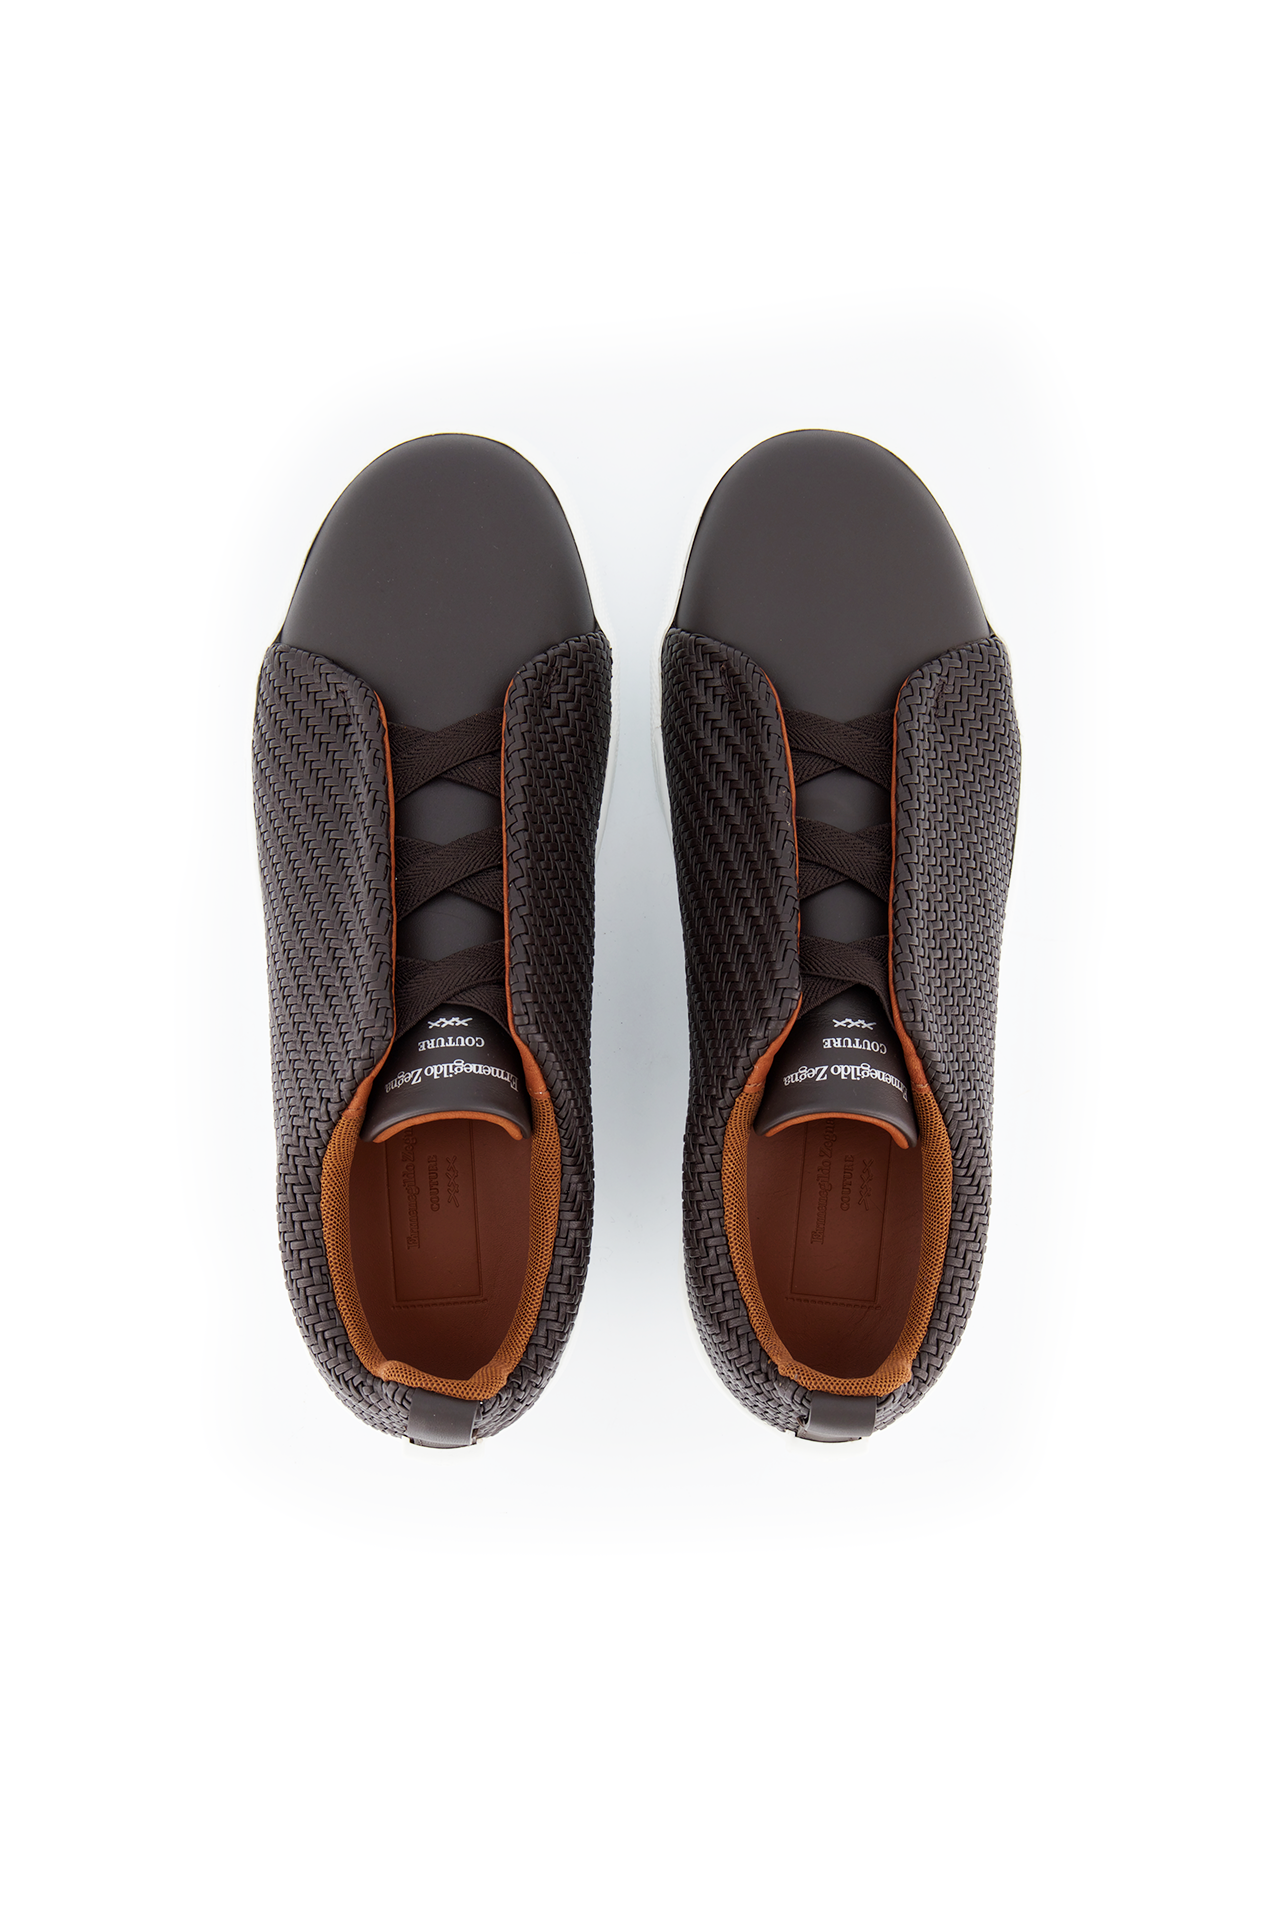 Top view image of Ermenegildo Zegna Brown Triple Stitch Sneaker